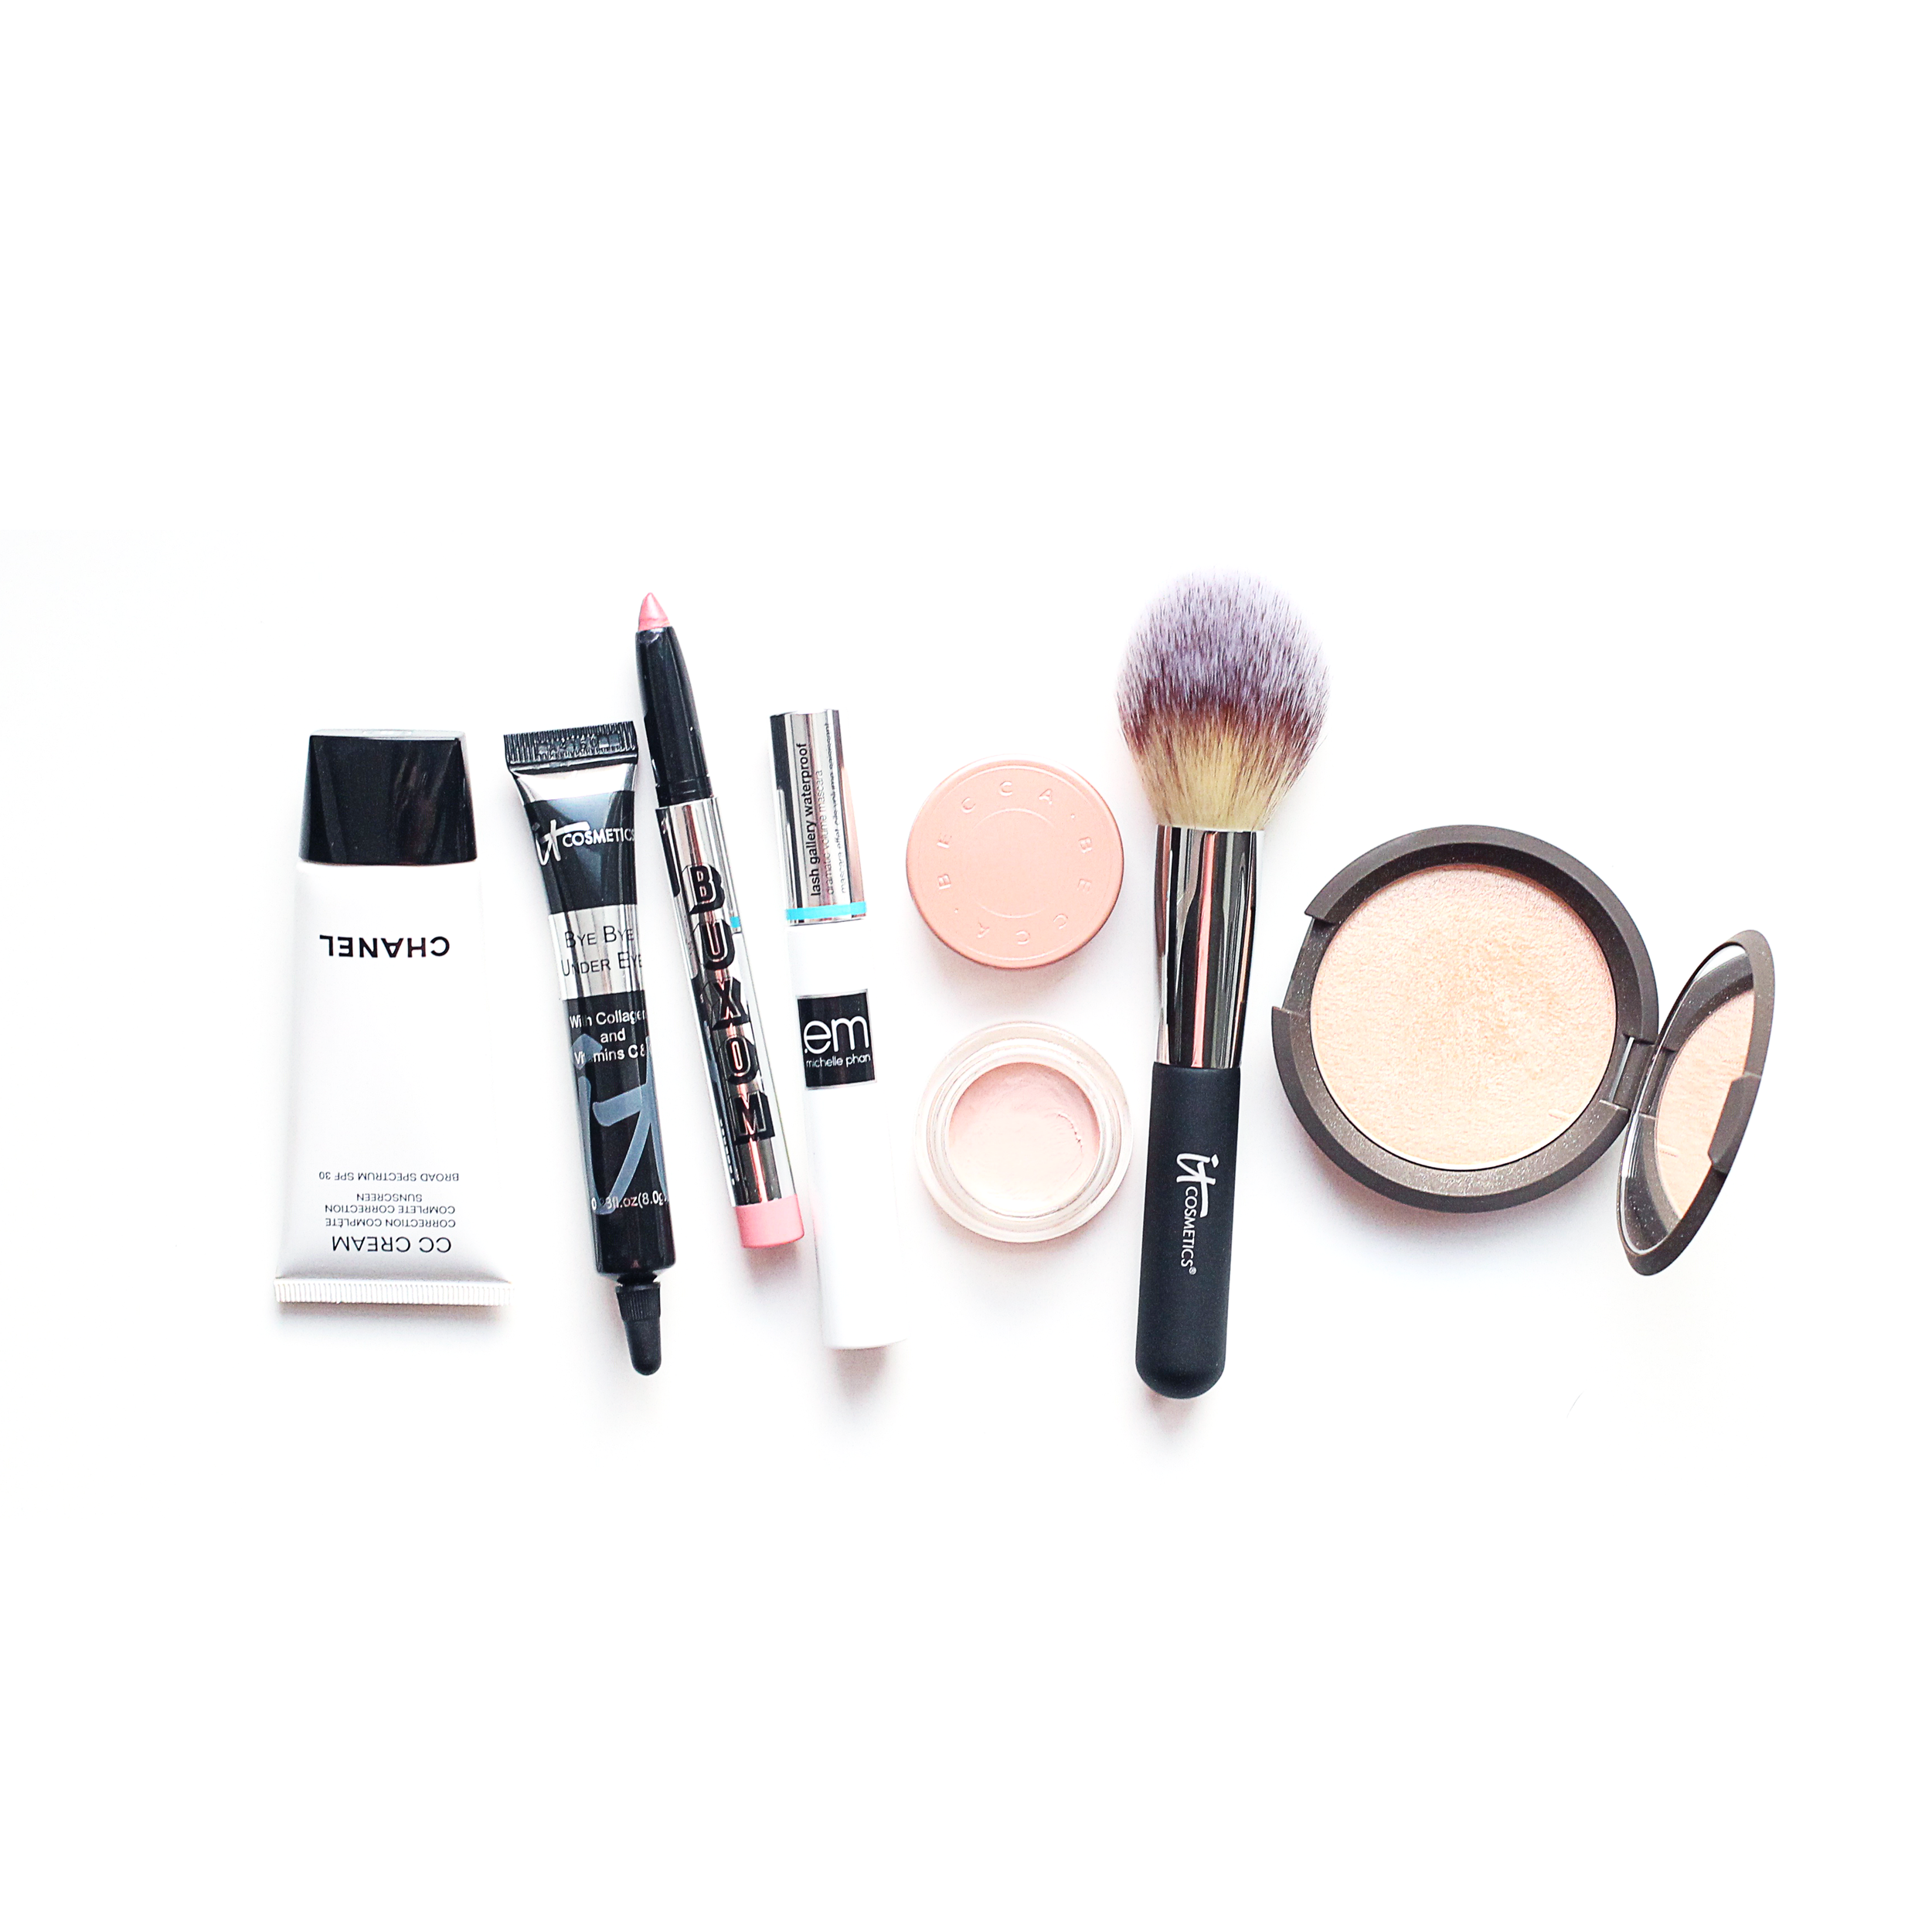 The Morning Makeup Routine